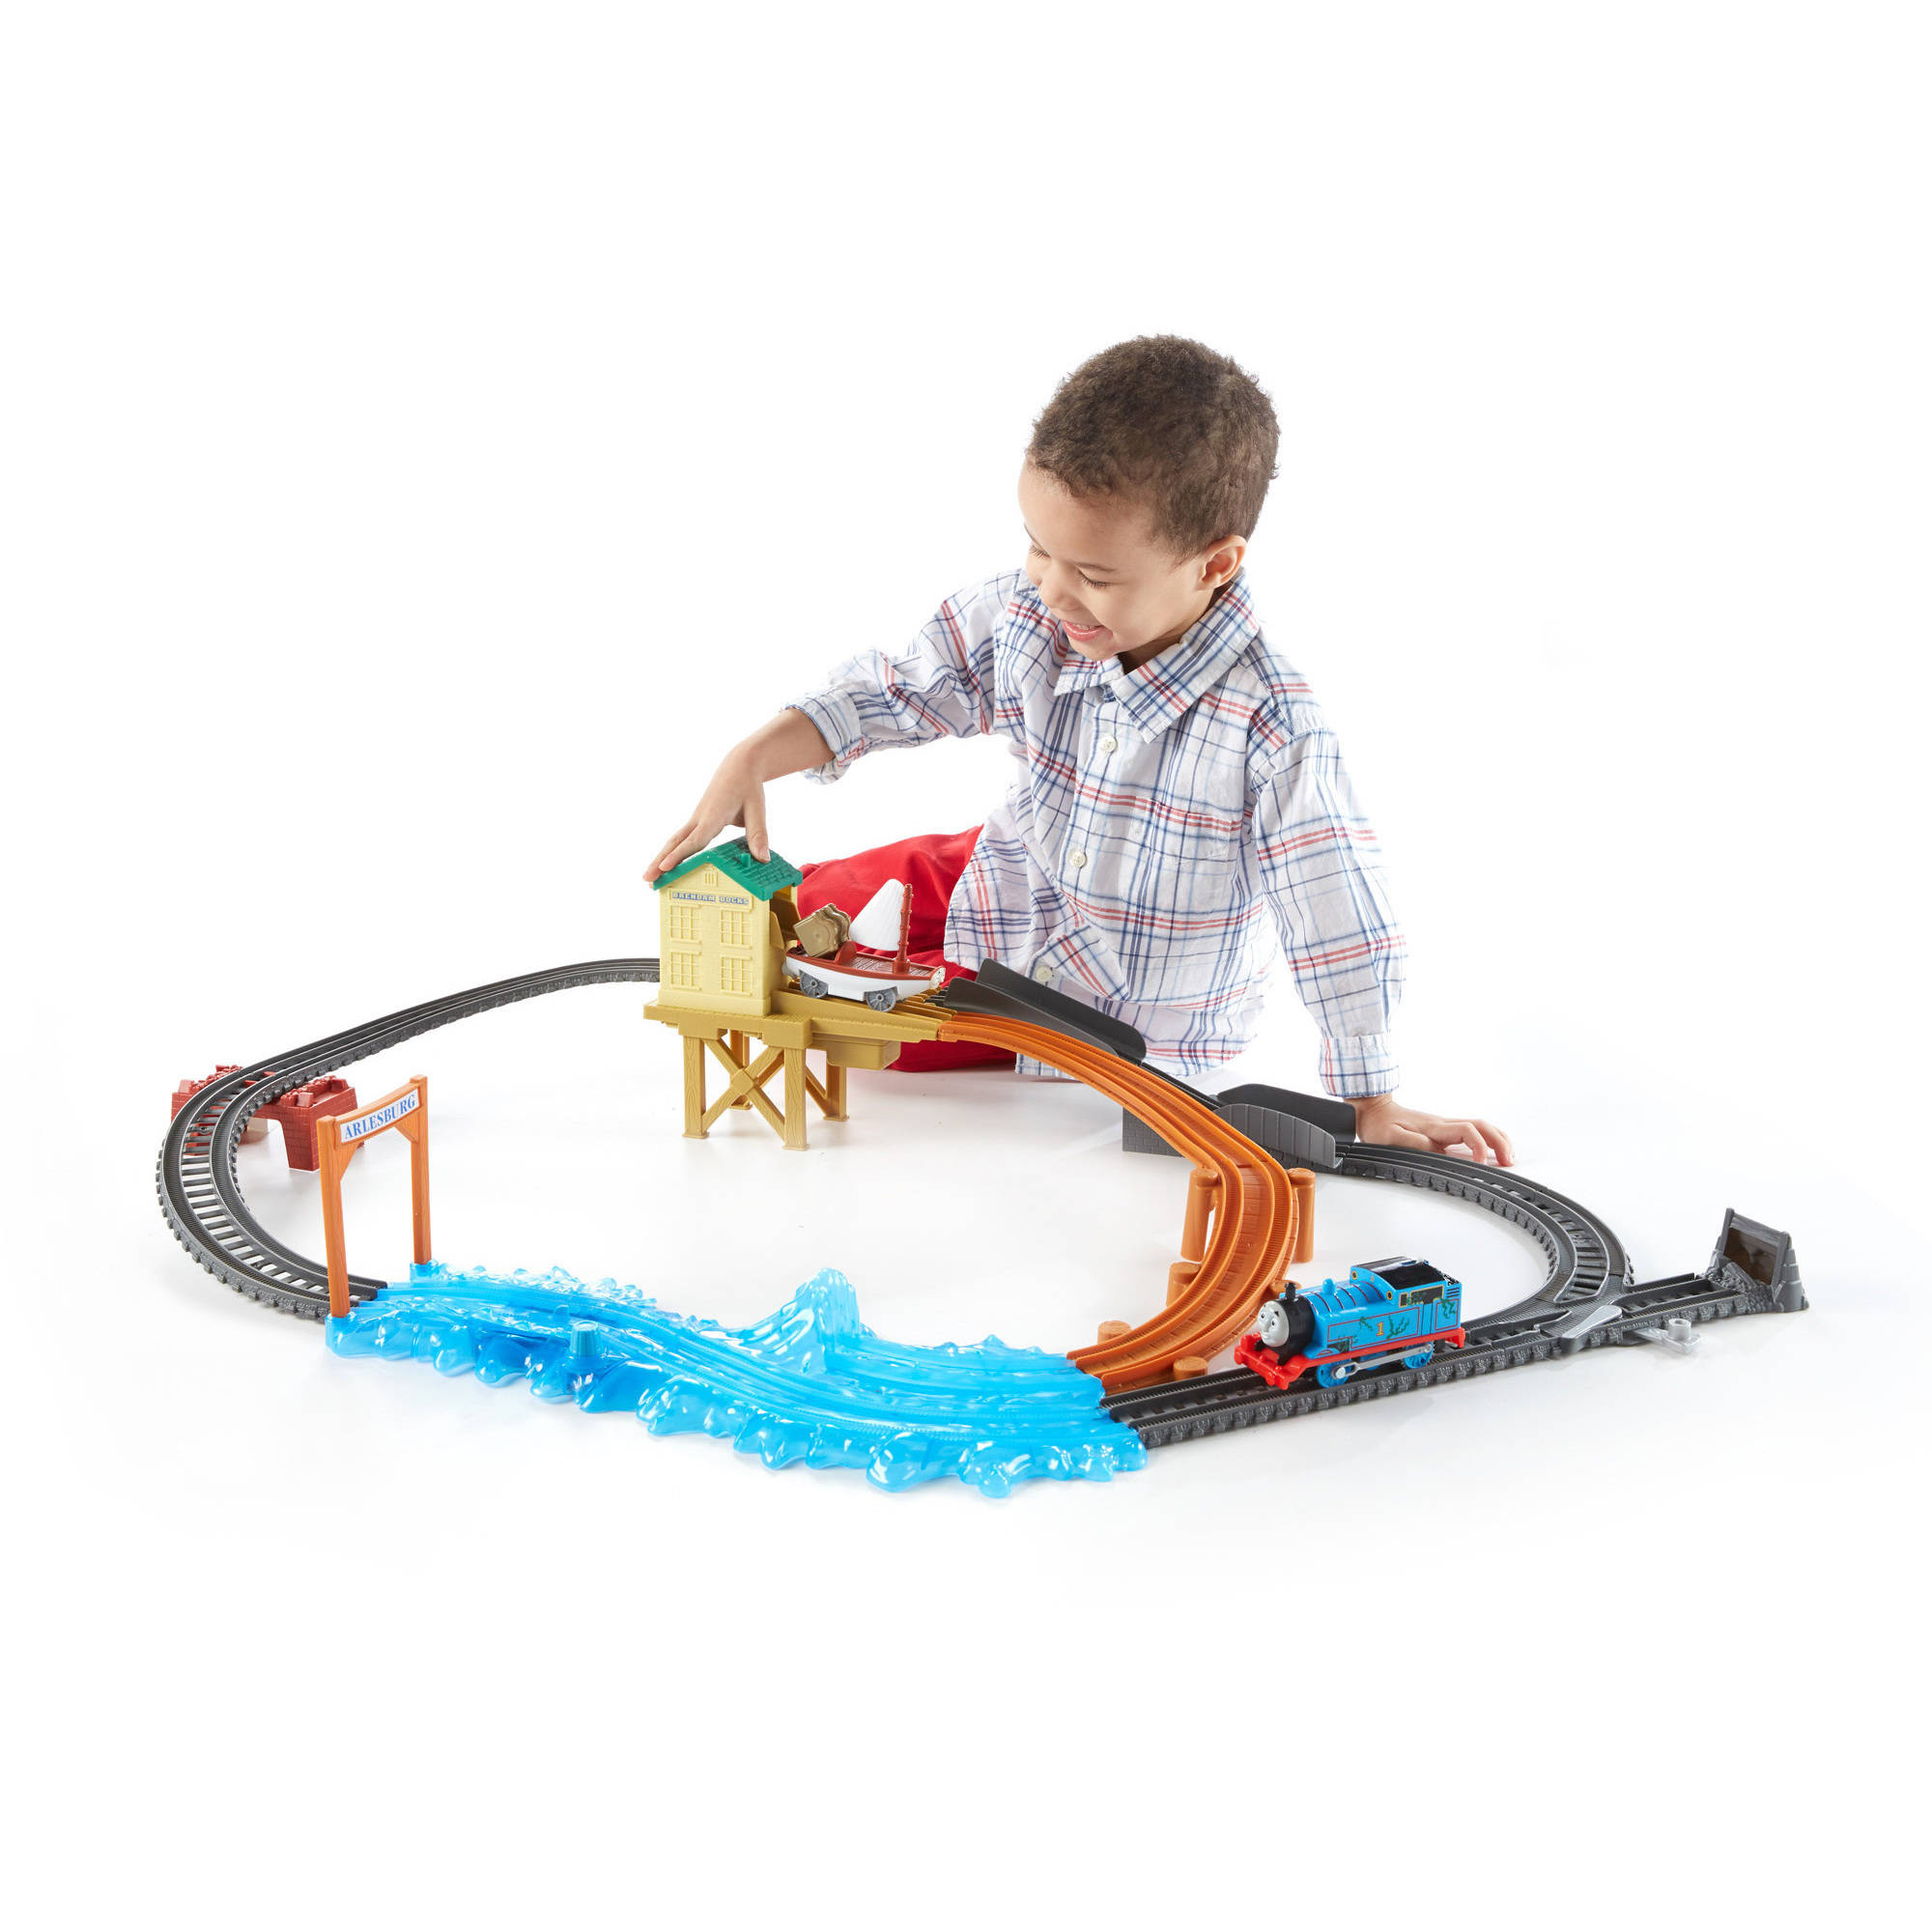 Fisher price thomas amp friends trackmaster treasure chase set new - Fisher Price Thomas Amp Friends Trackmaster Treasure Chase Set New 11